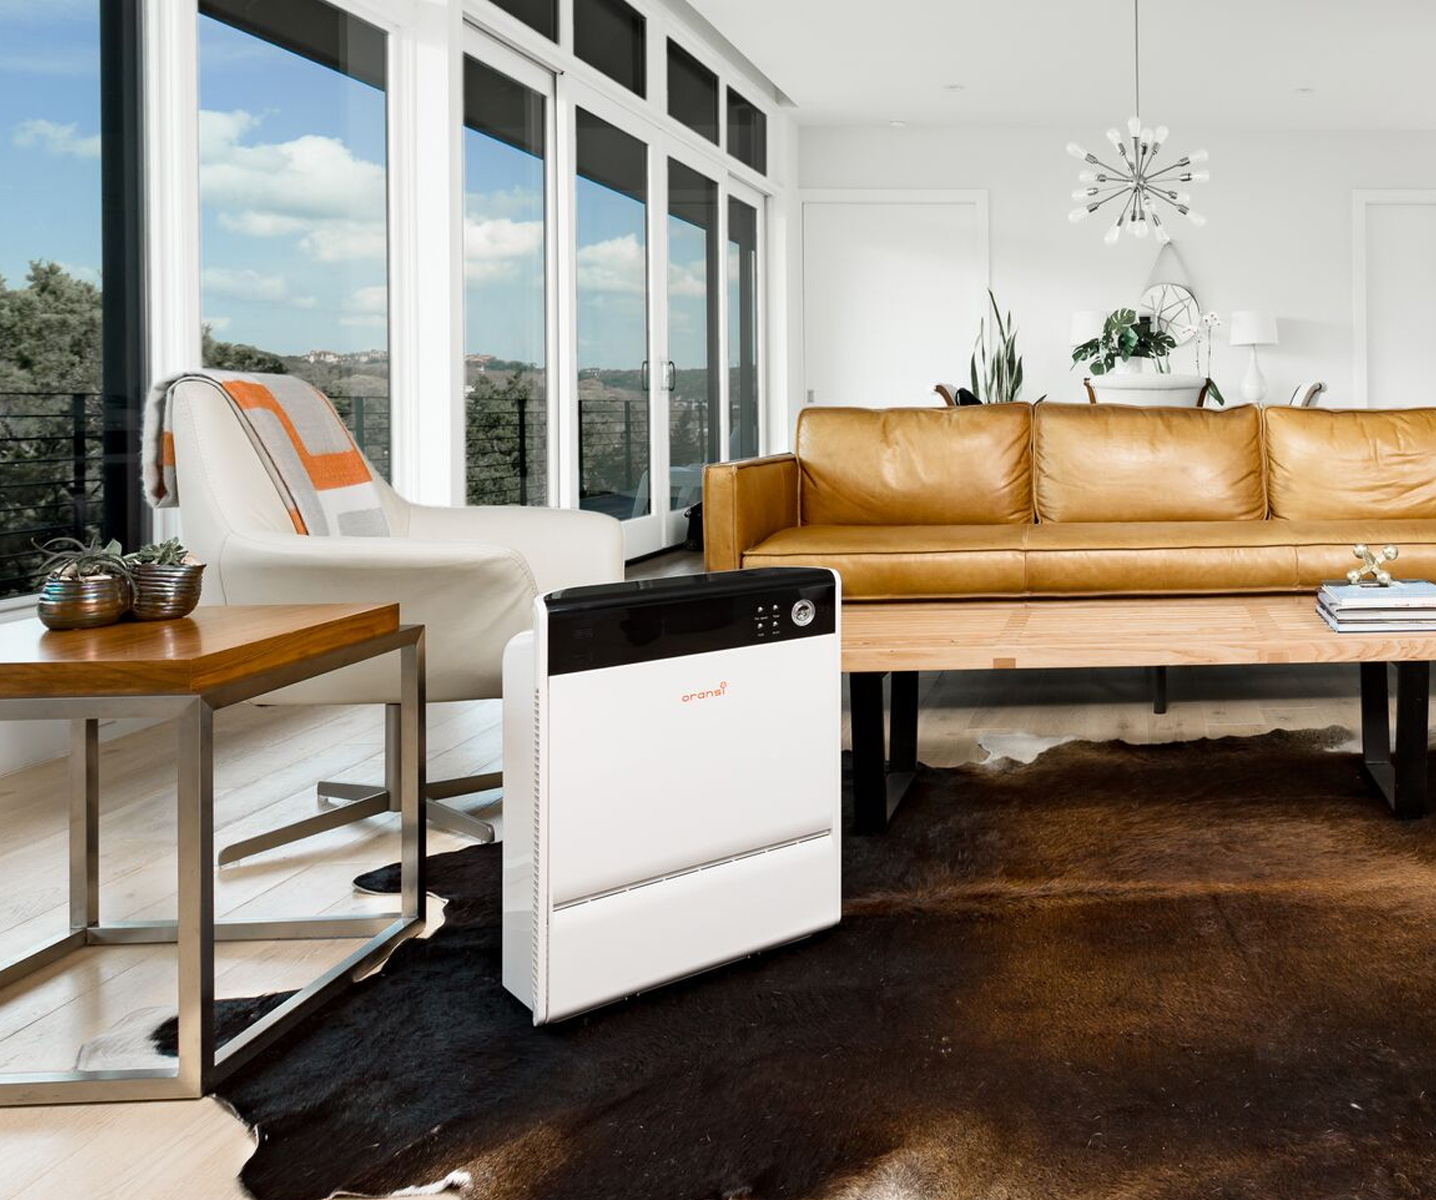 oransi air purifier in a living room